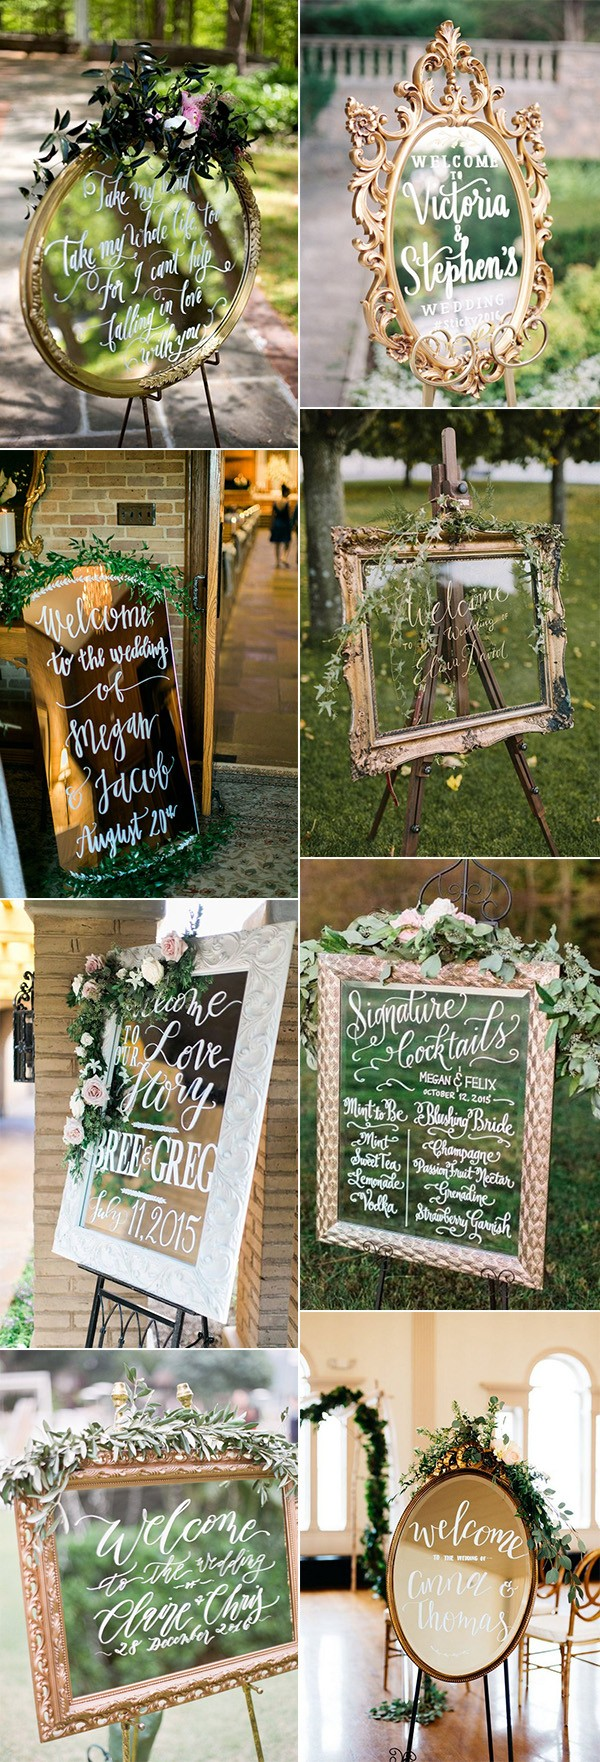 2018 trending vintage wedding sign ideas